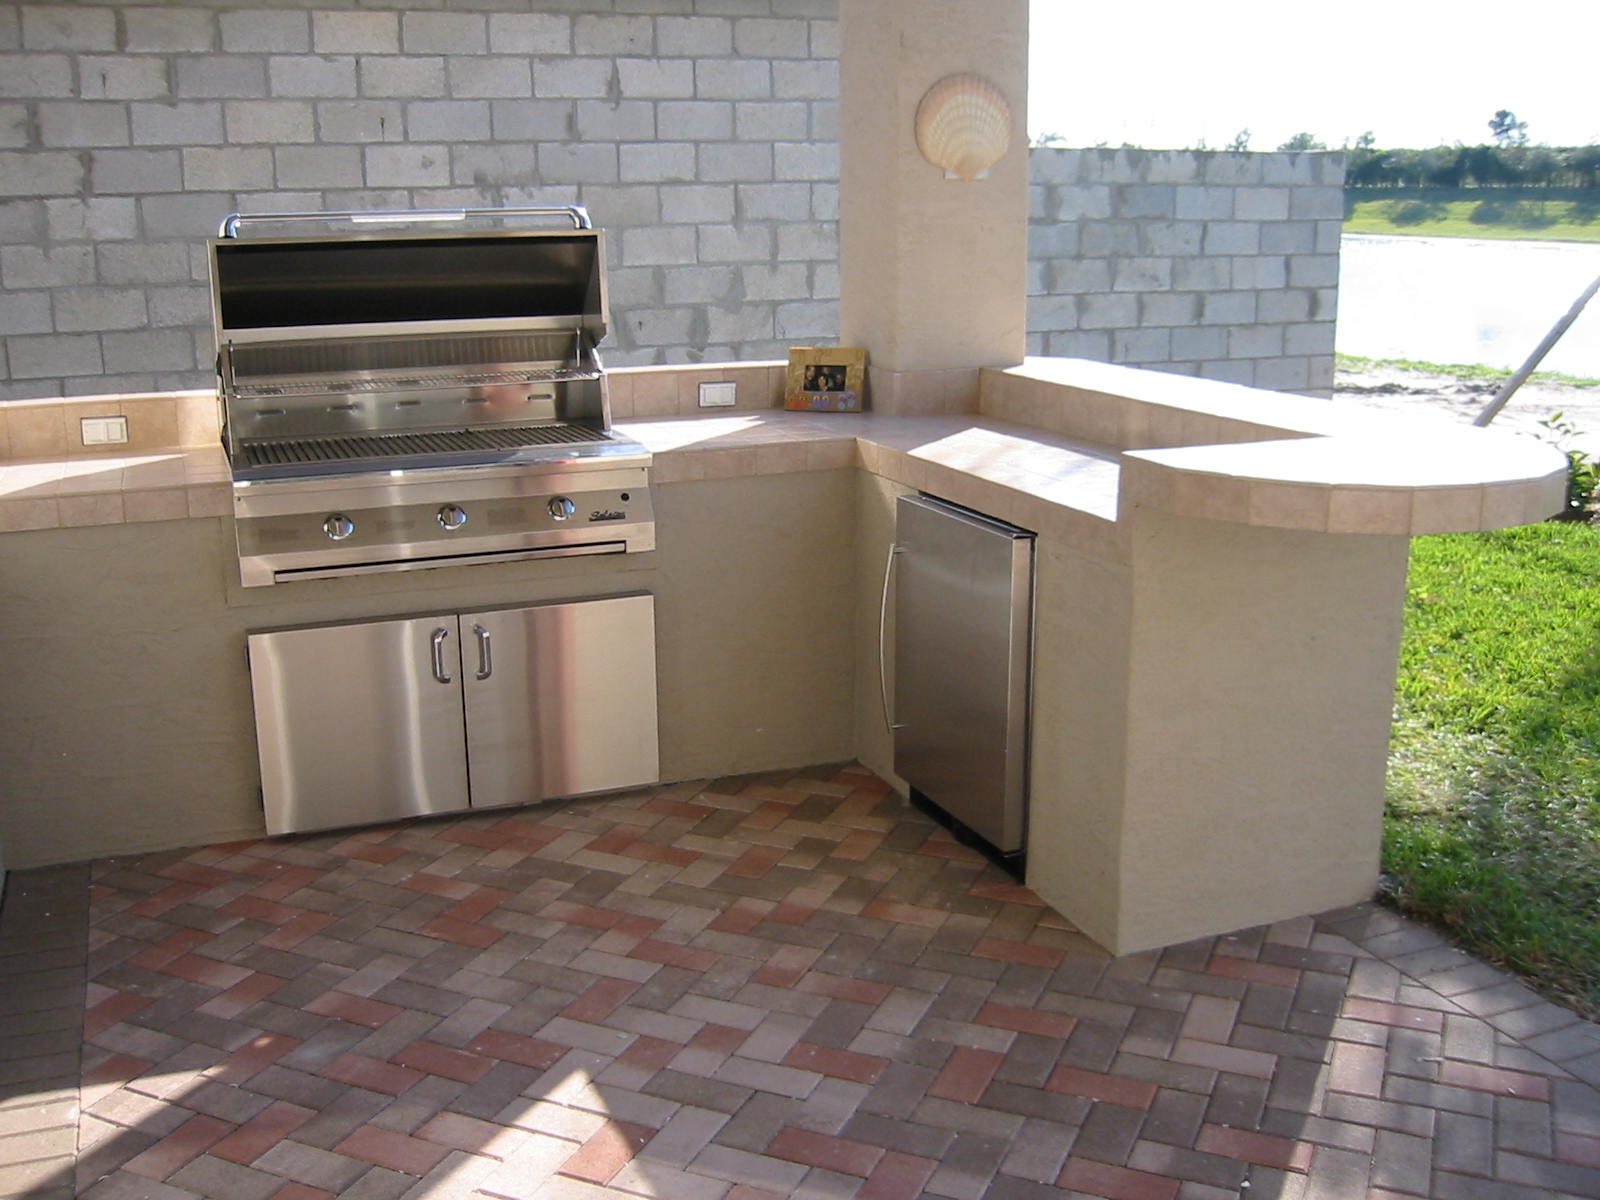 Kitchen grills electric Photo - 3